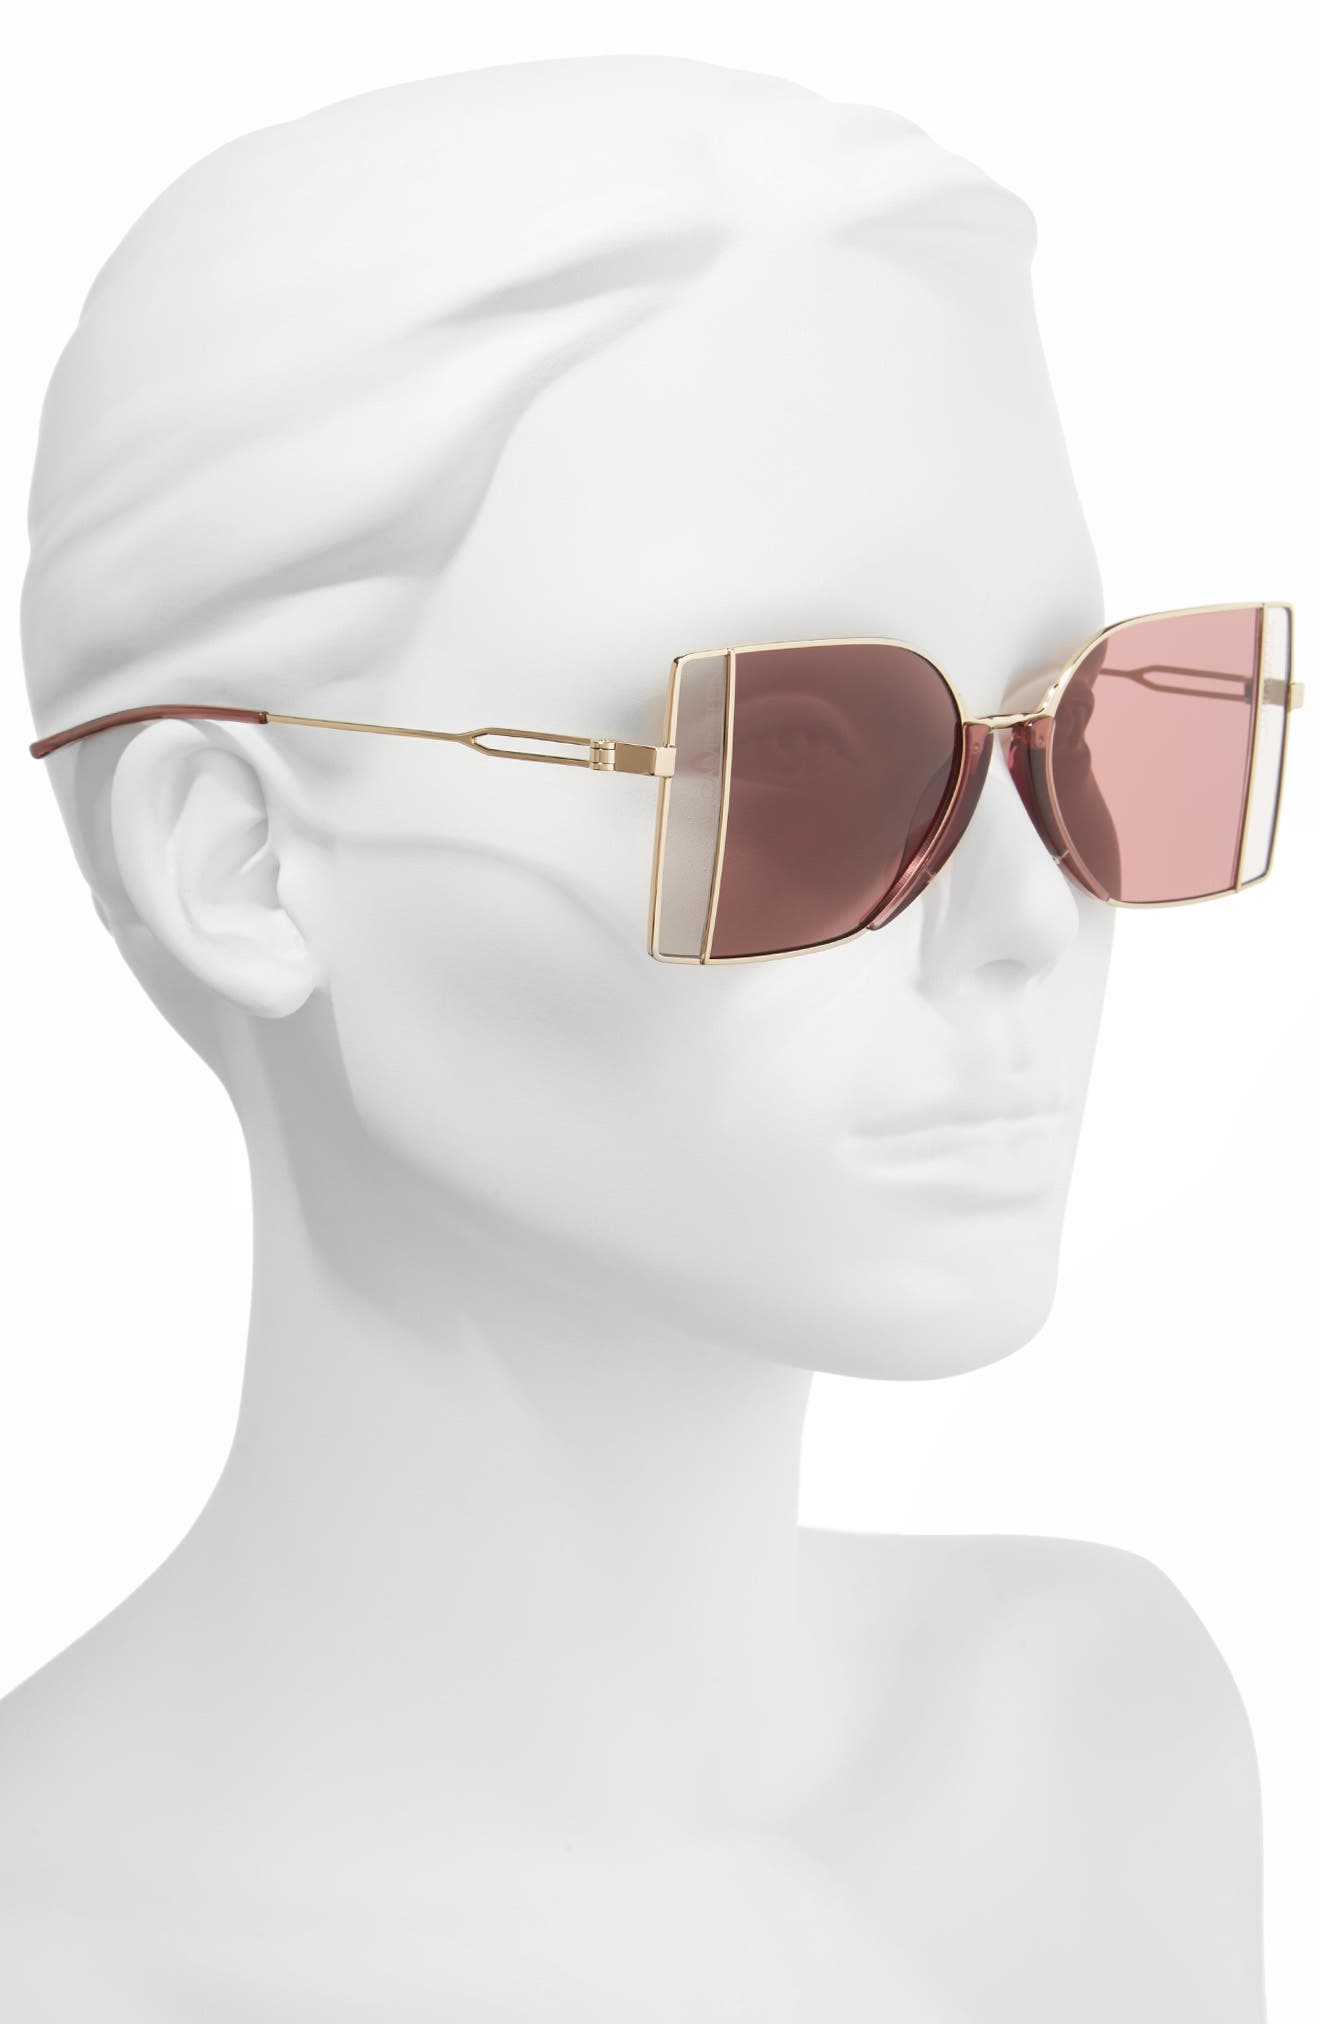 Alternate Image 2  - CALVIN KLEIN 205W39NYC 51mm Butterfly Sunglasses